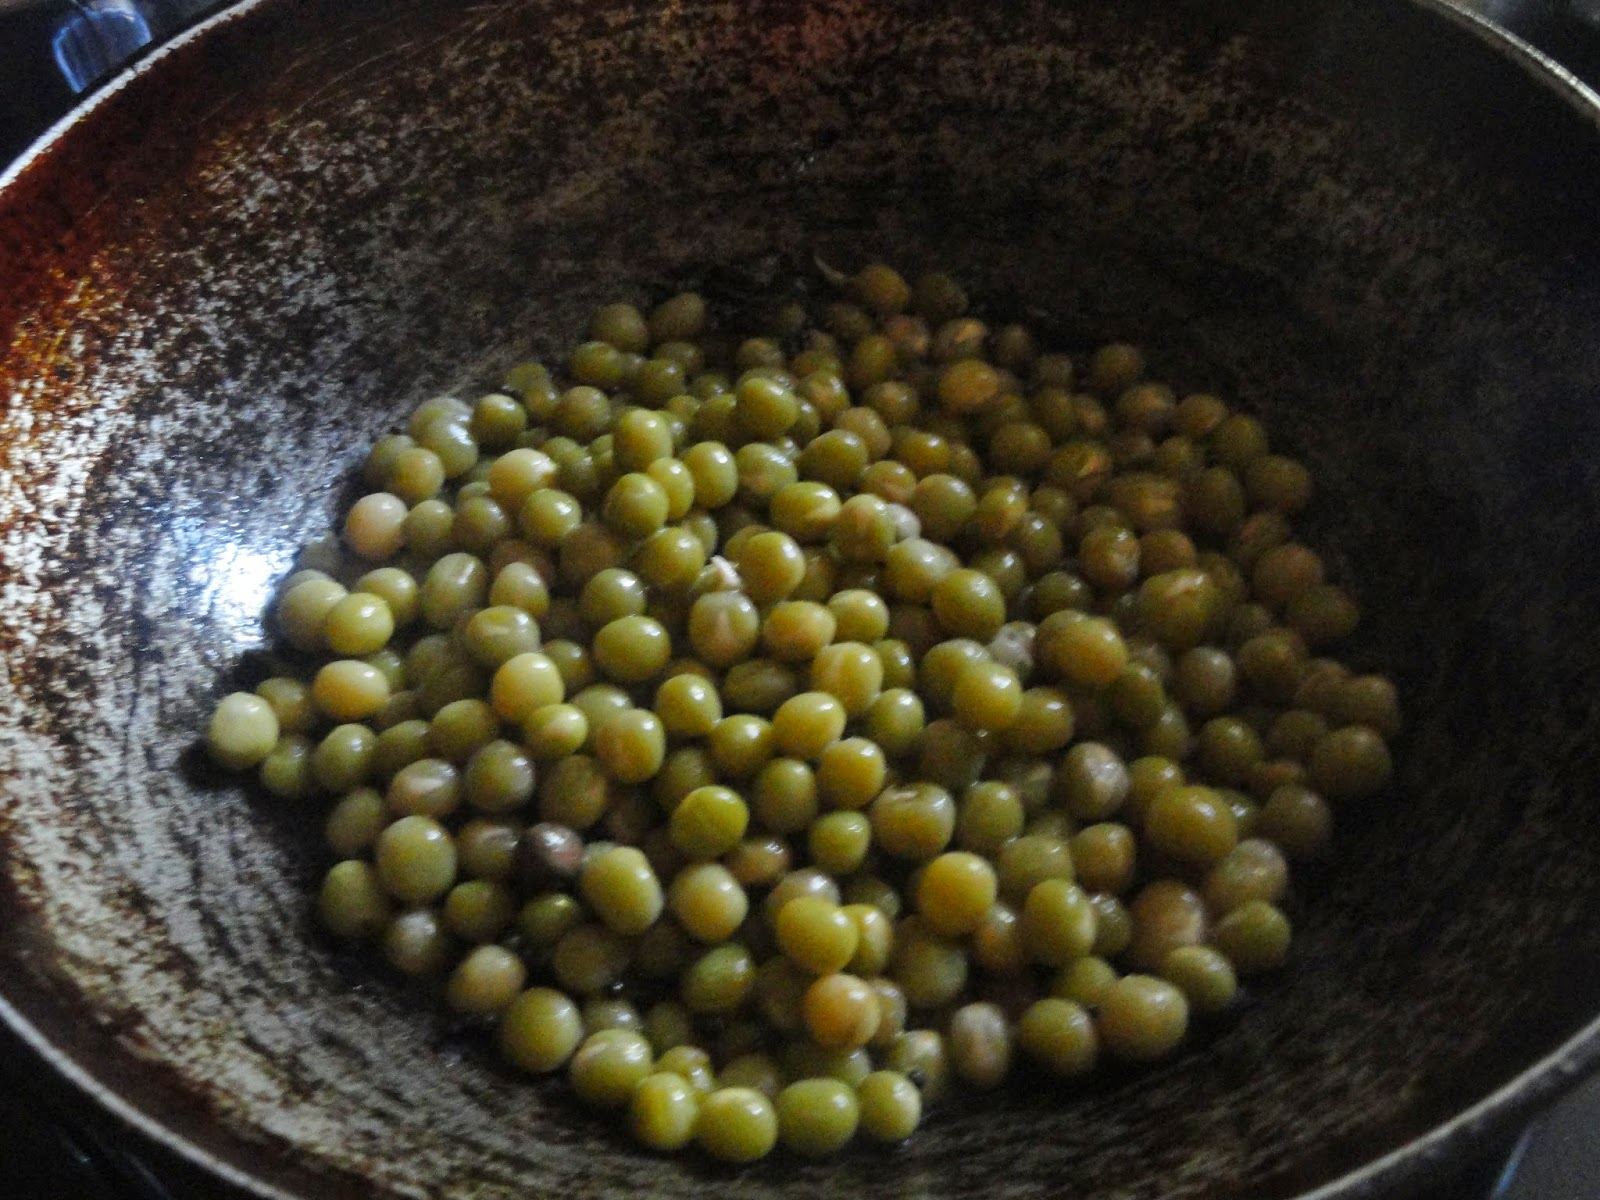 Peas added to coconut mixture